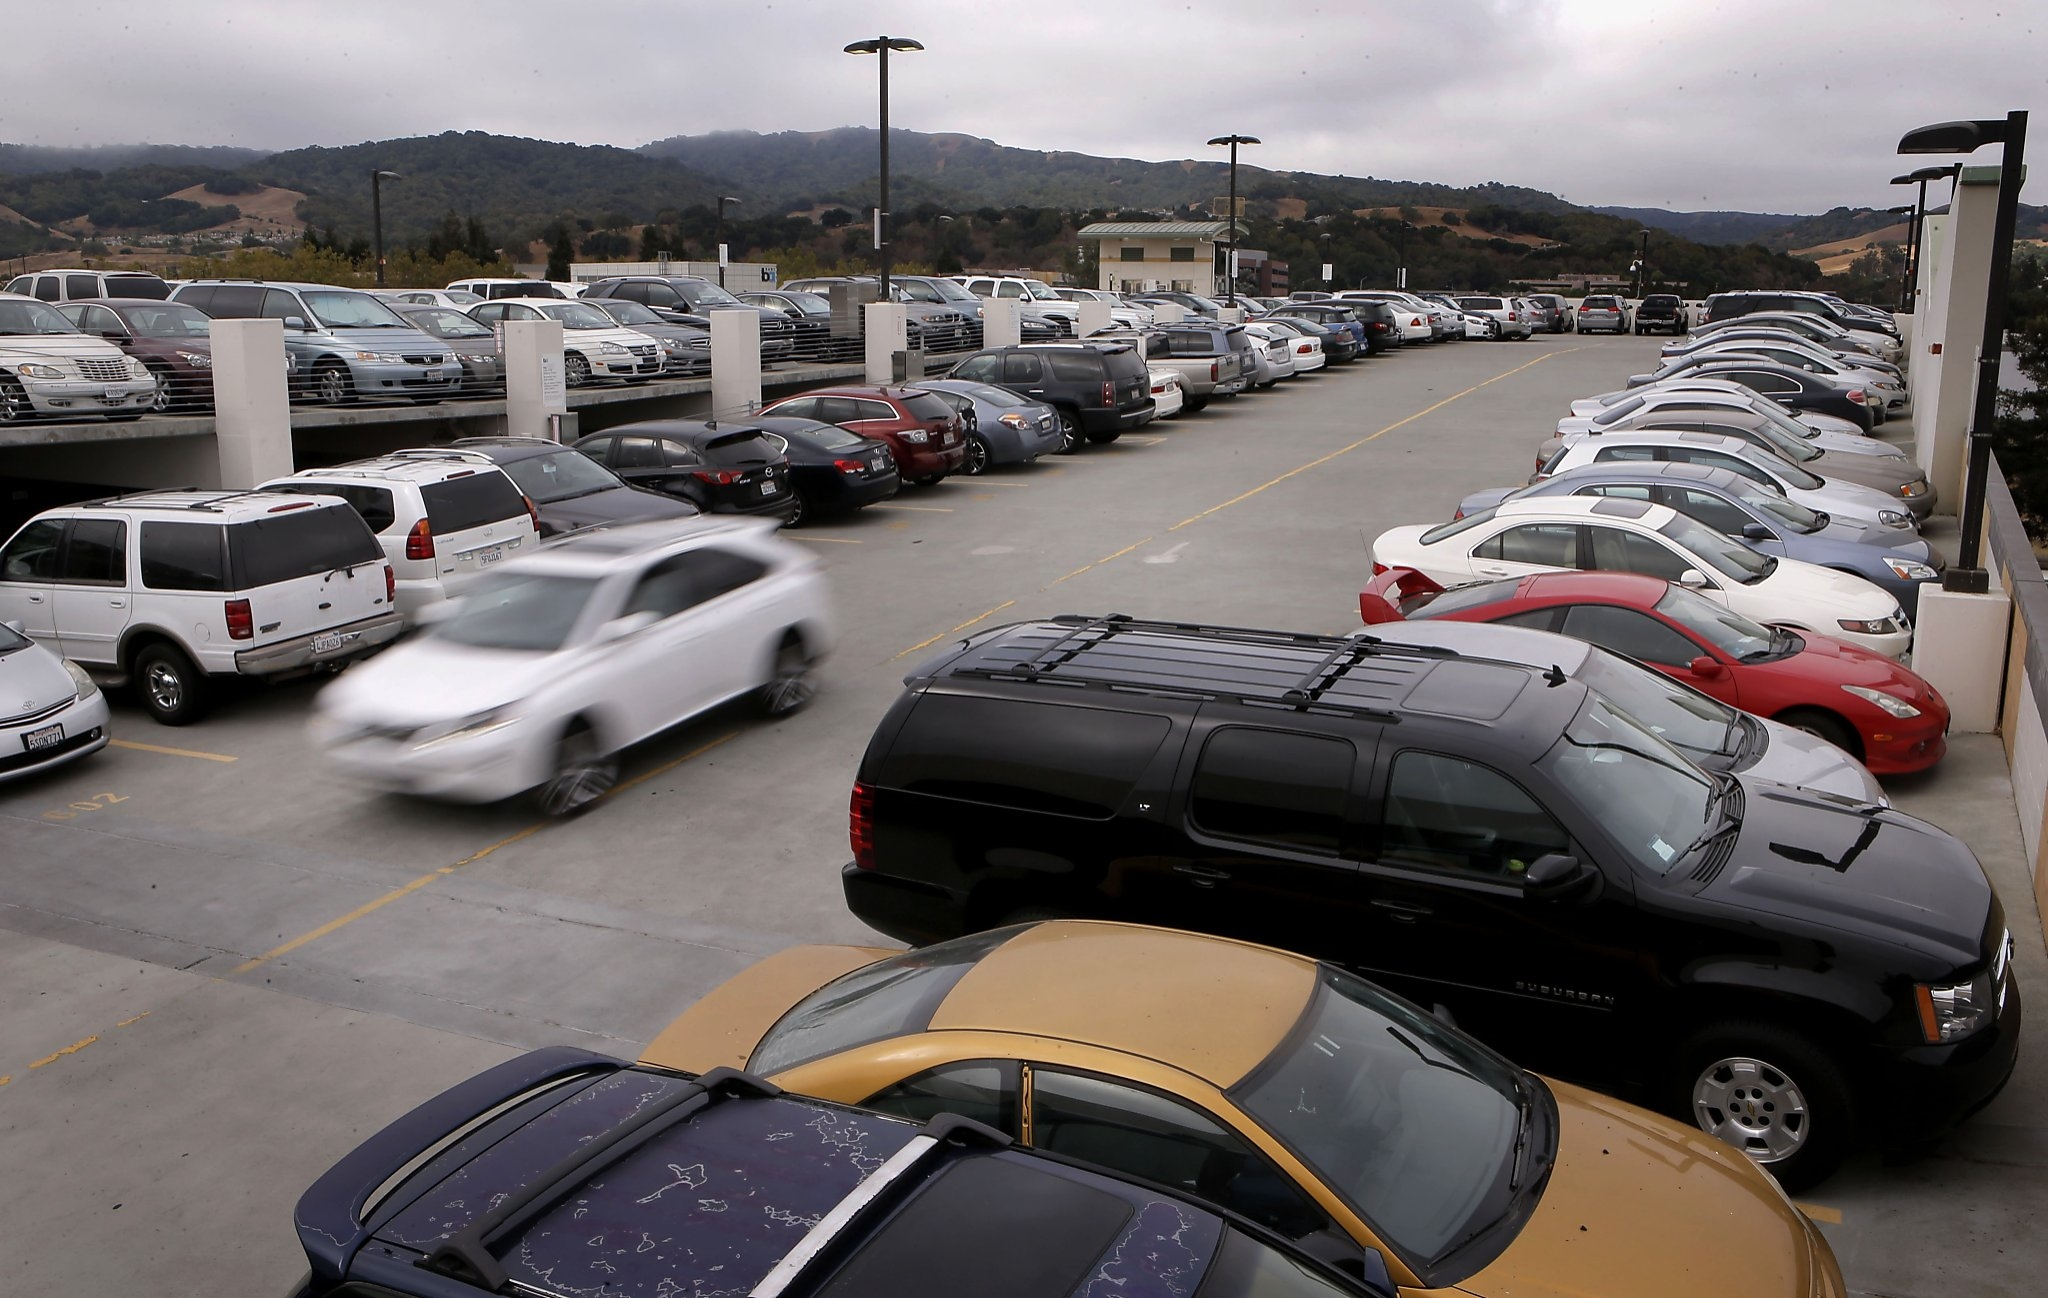 Parking Lots Are Turning Into Waiting Lots, Plus Other Changes and Patterns | DeviceDaily.com